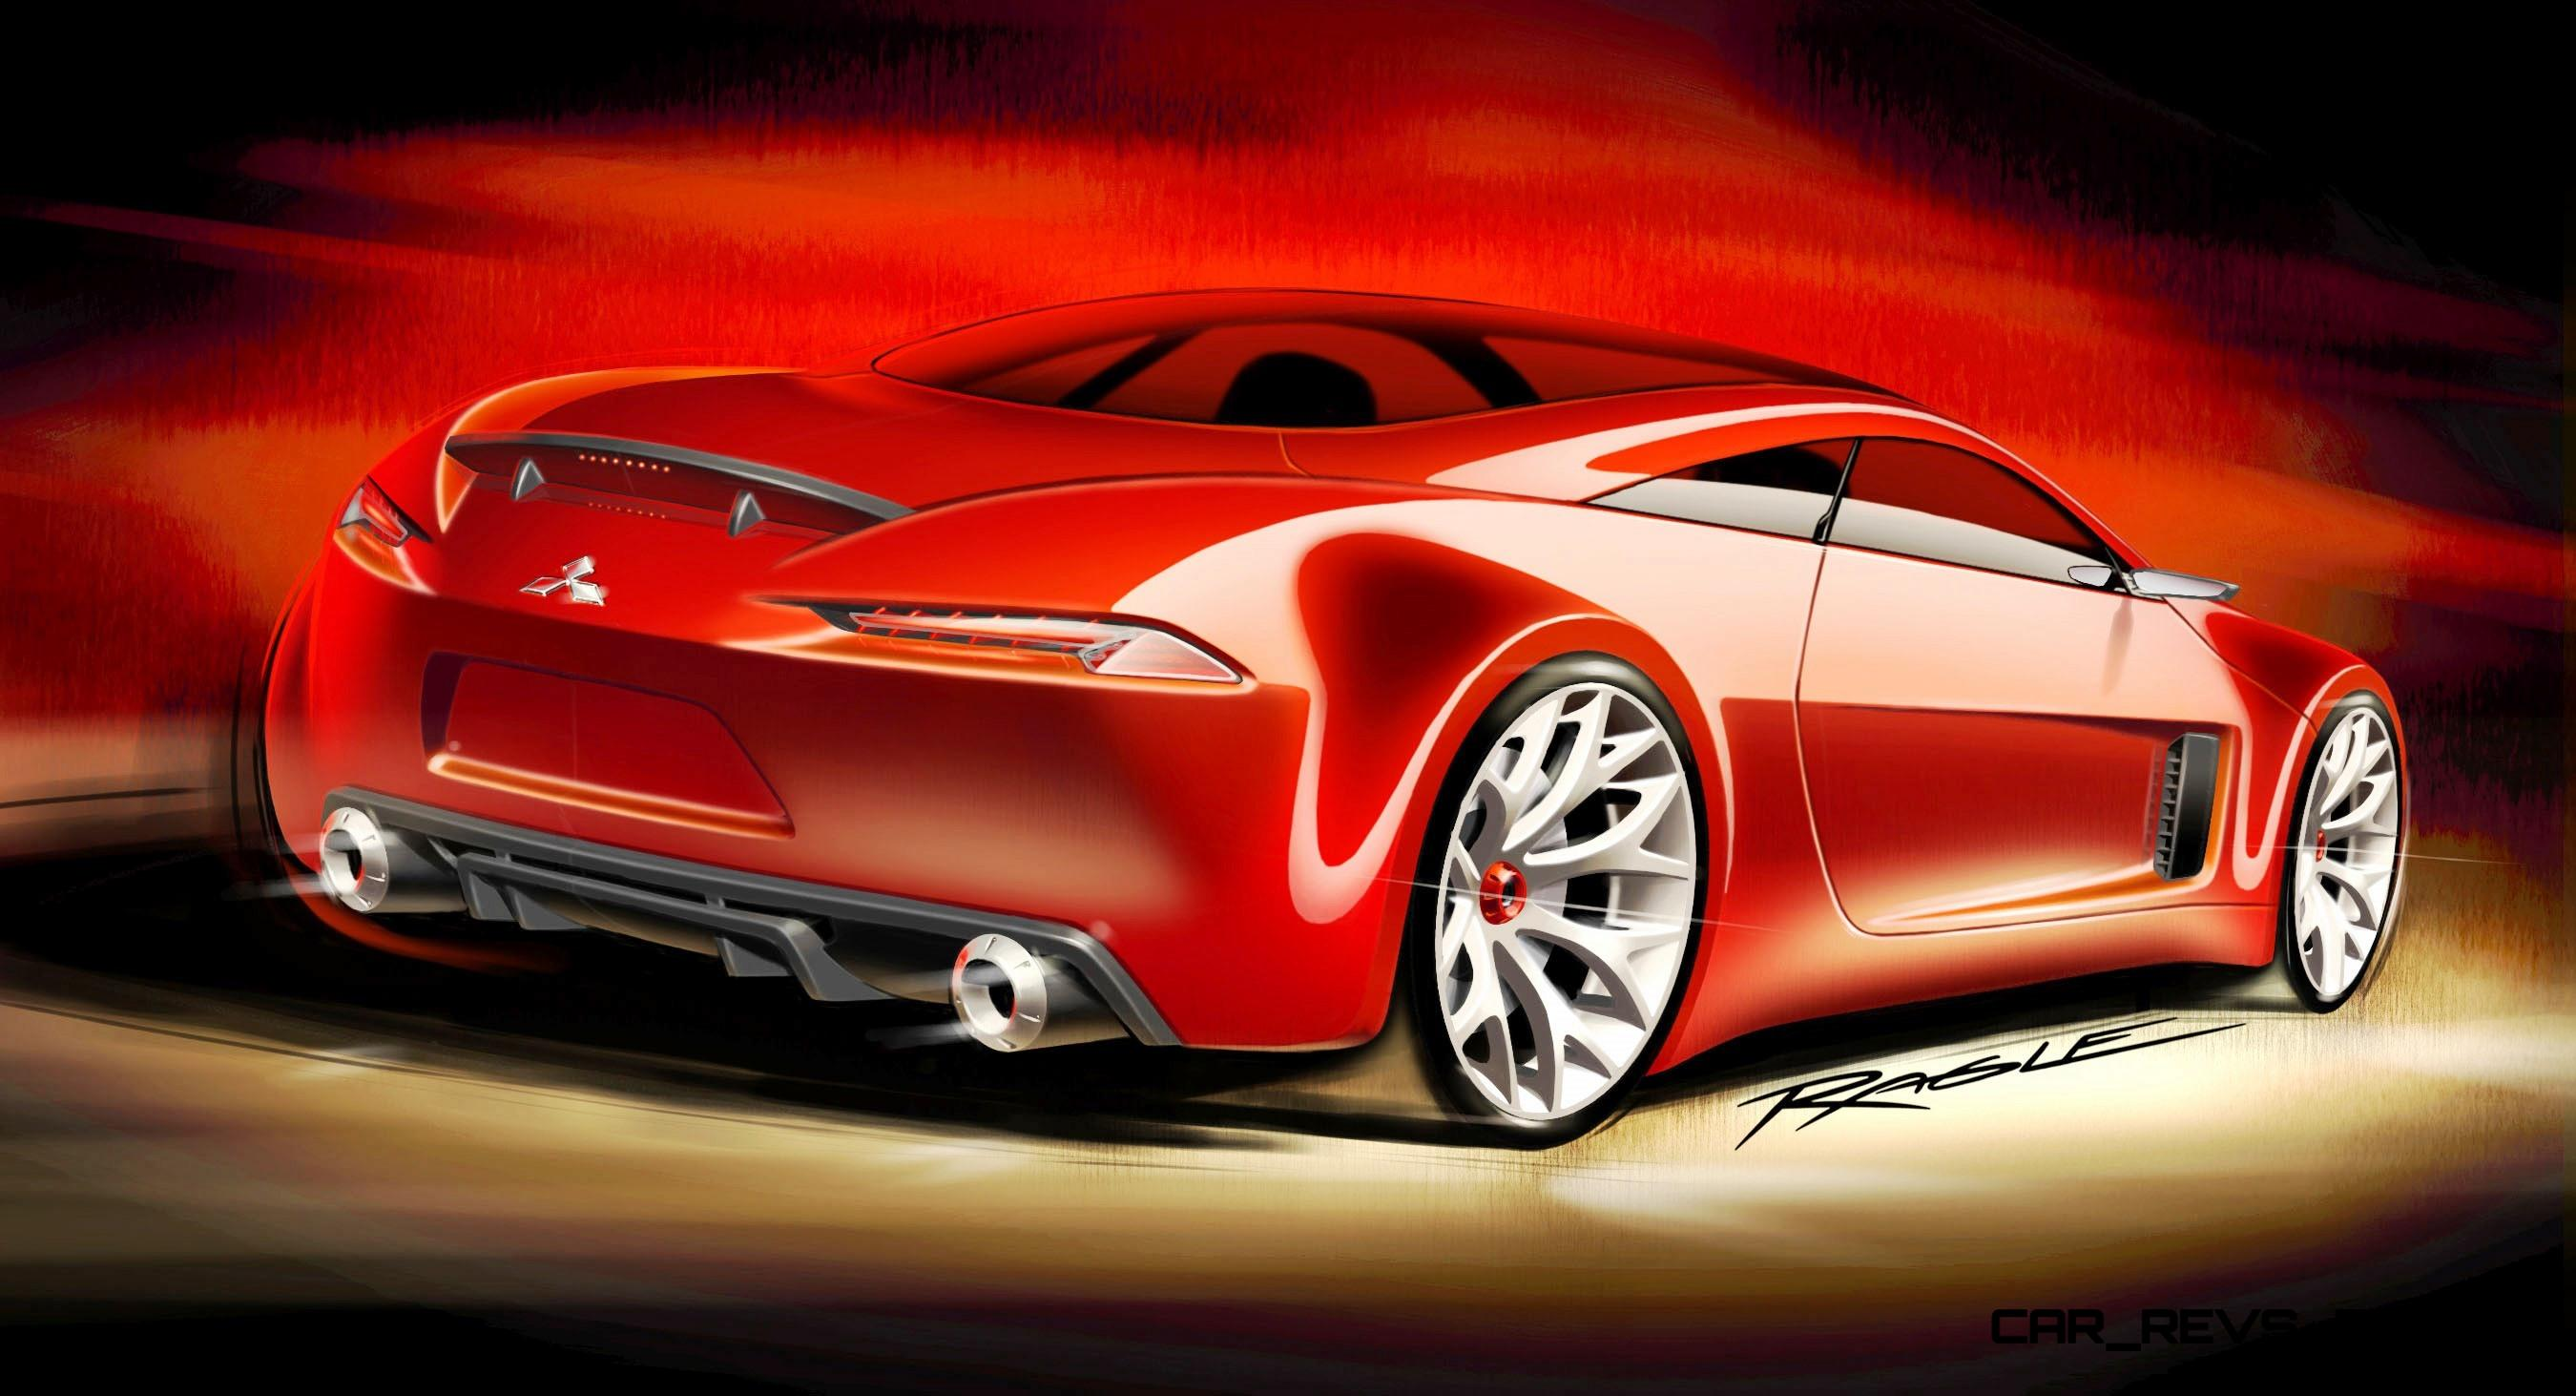 http://www.car-revs-daily.com/wp-content/uploads/2008-Mitsubishi-Concept-RA-Previewed-a-5th-Gen-Eclipse-GSR-with-Evo-AWD-and-Turbo-Tech-23.jpg